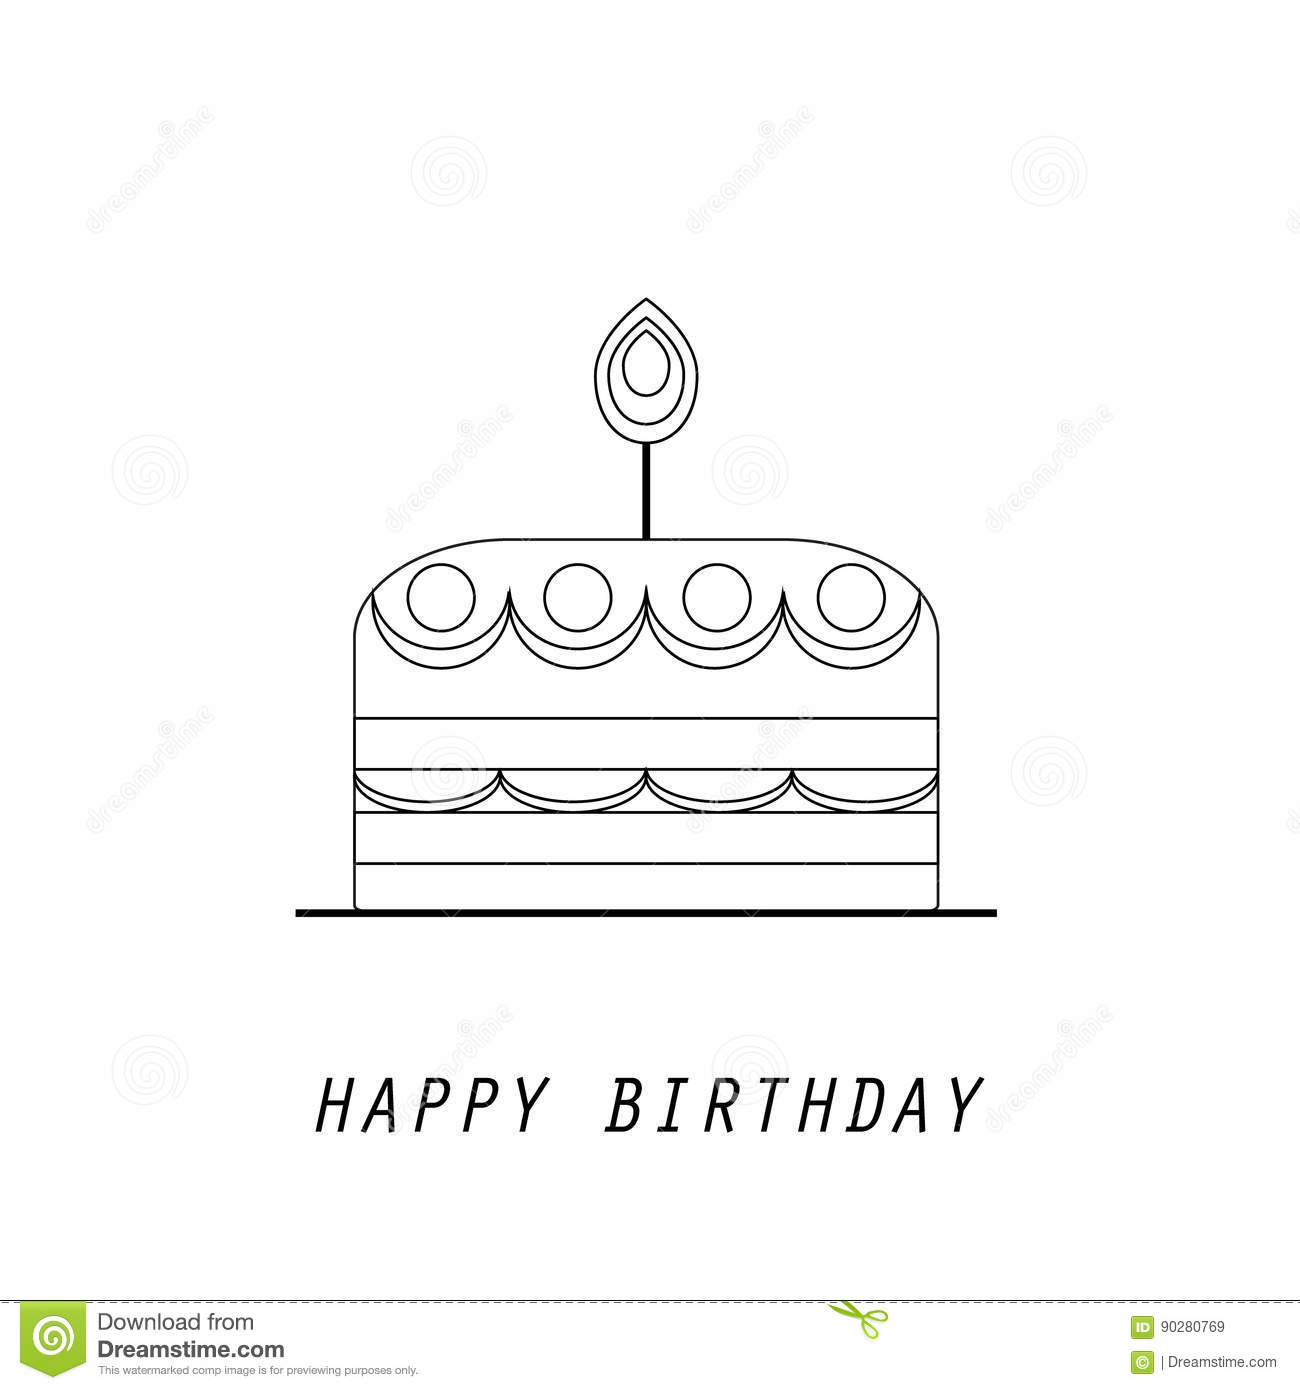 Line Style Logotype Template With Cake Candles